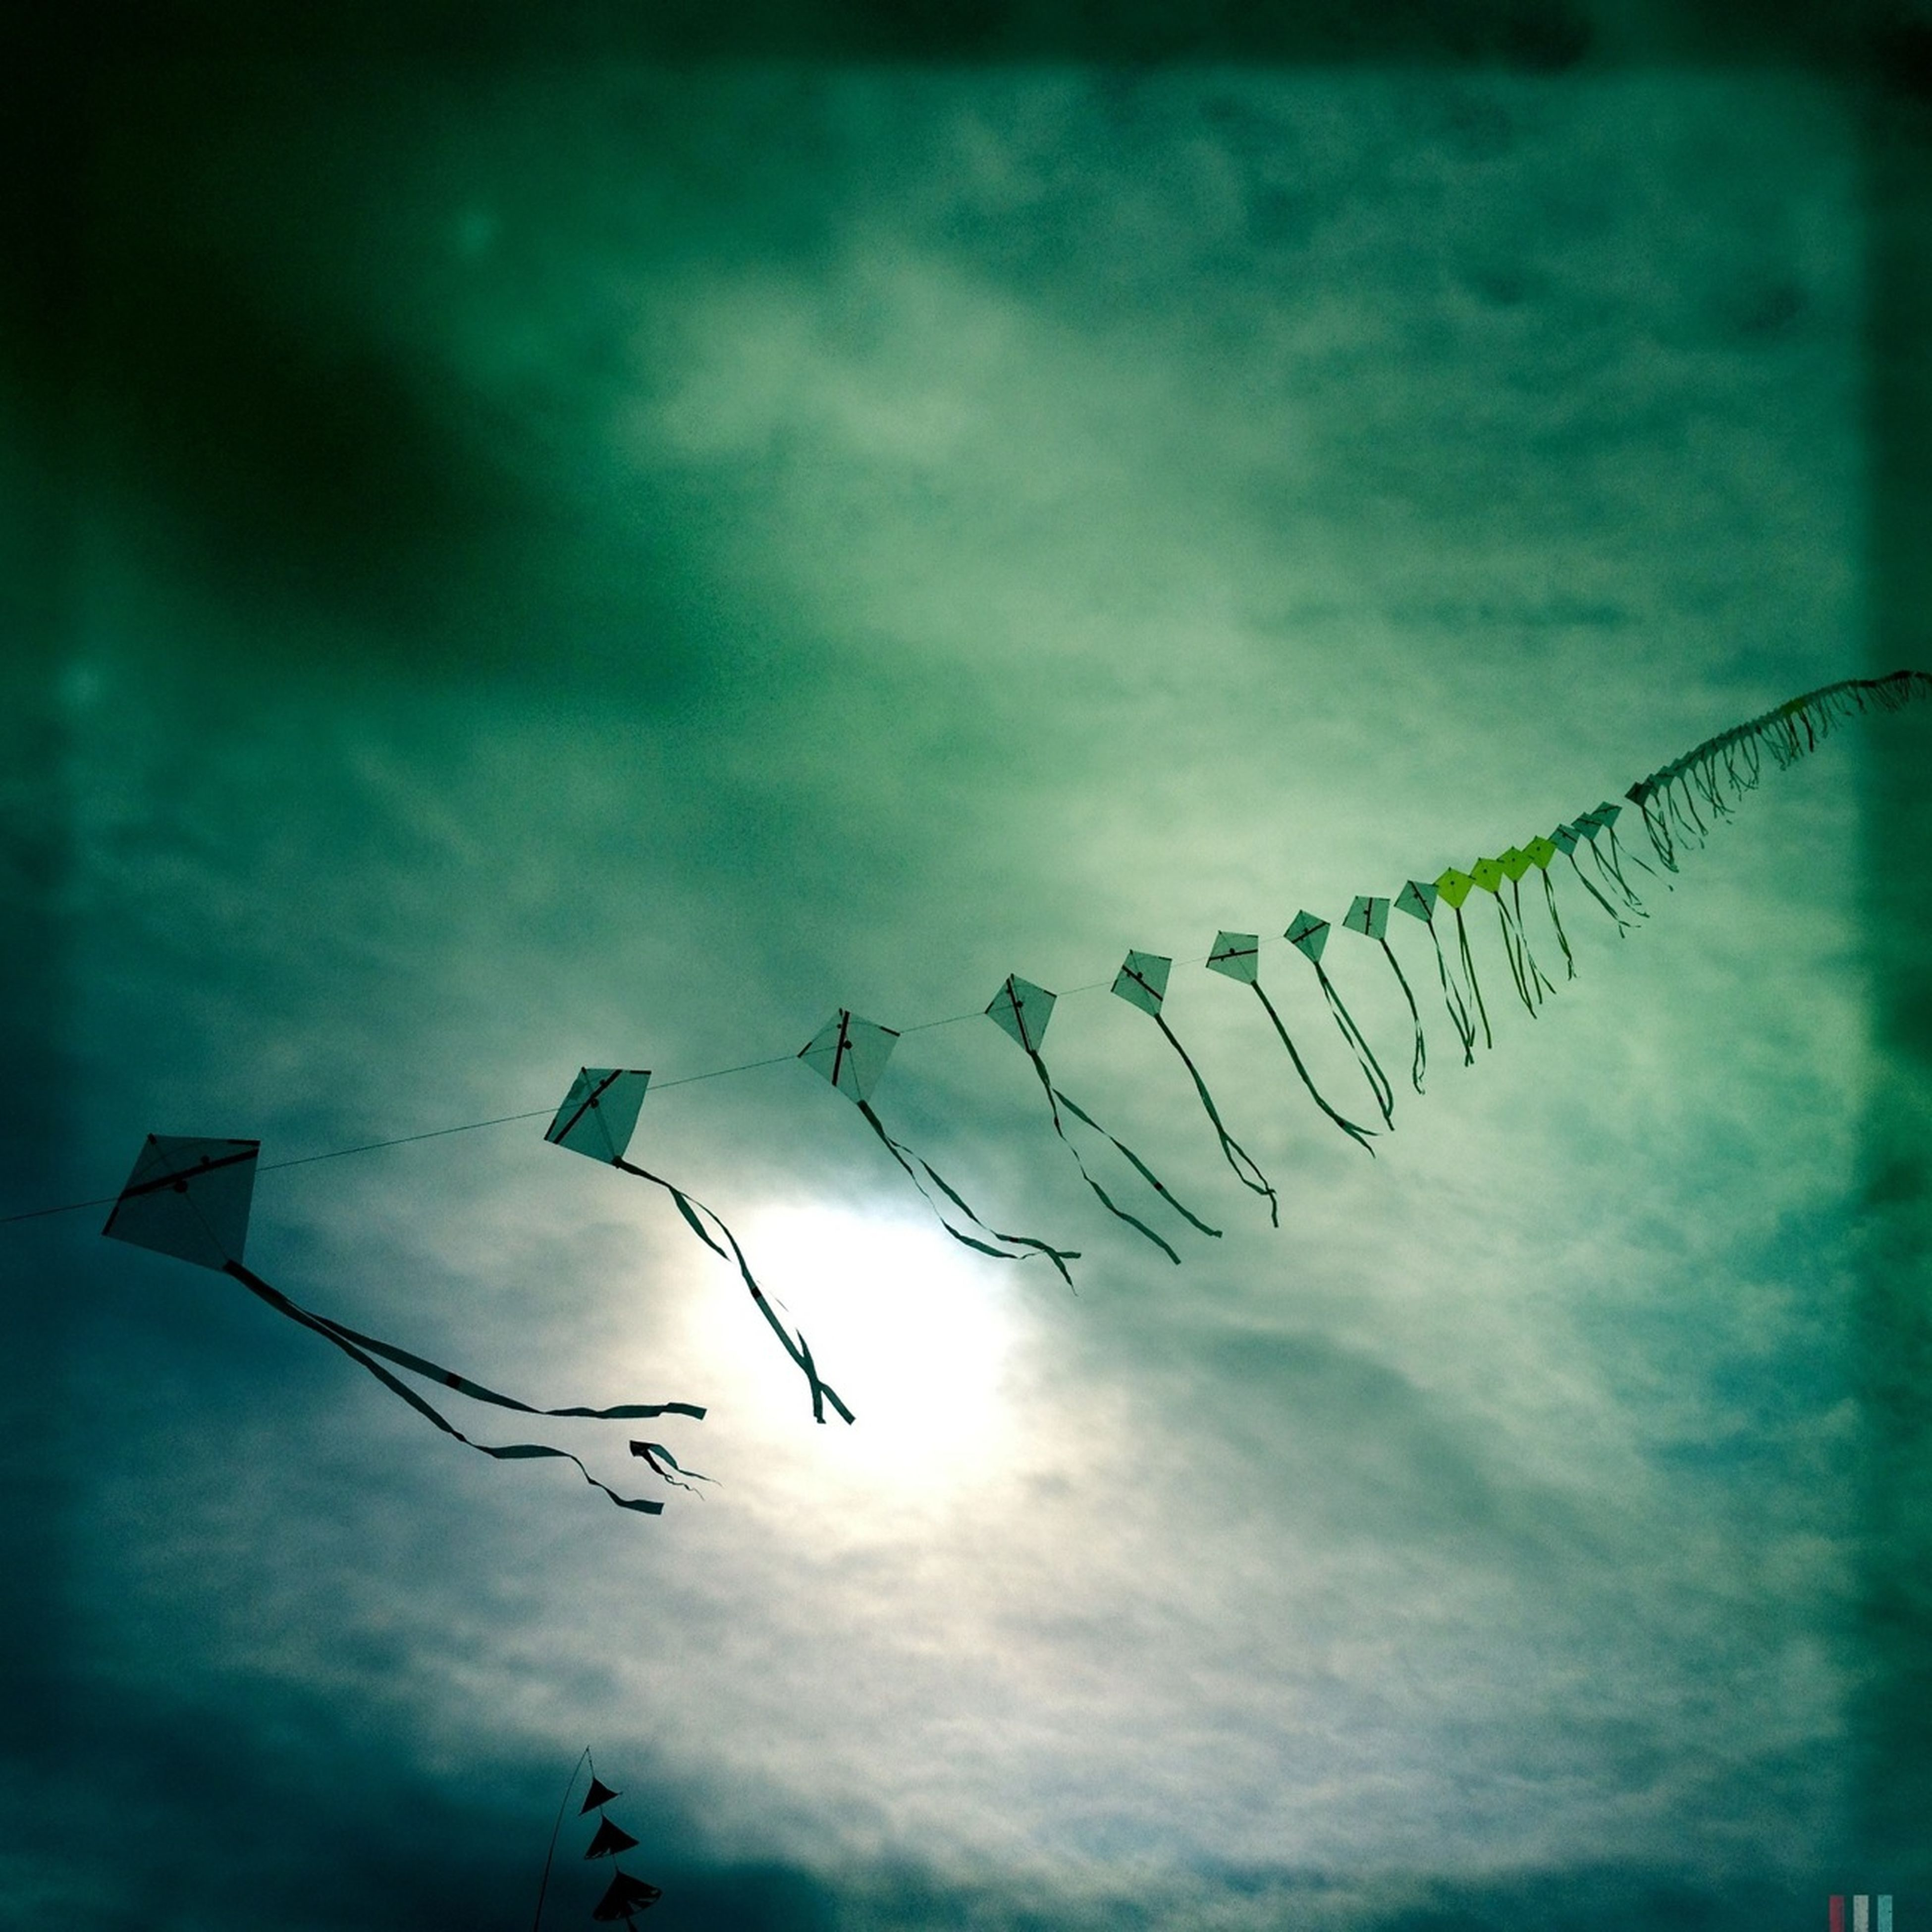 low angle view, sky, cloud - sky, cloudy, cloud, no people, hanging, outdoors, nature, in a row, blue, day, silhouette, dusk, lighting equipment, pole, protection, safety, multi colored, street light